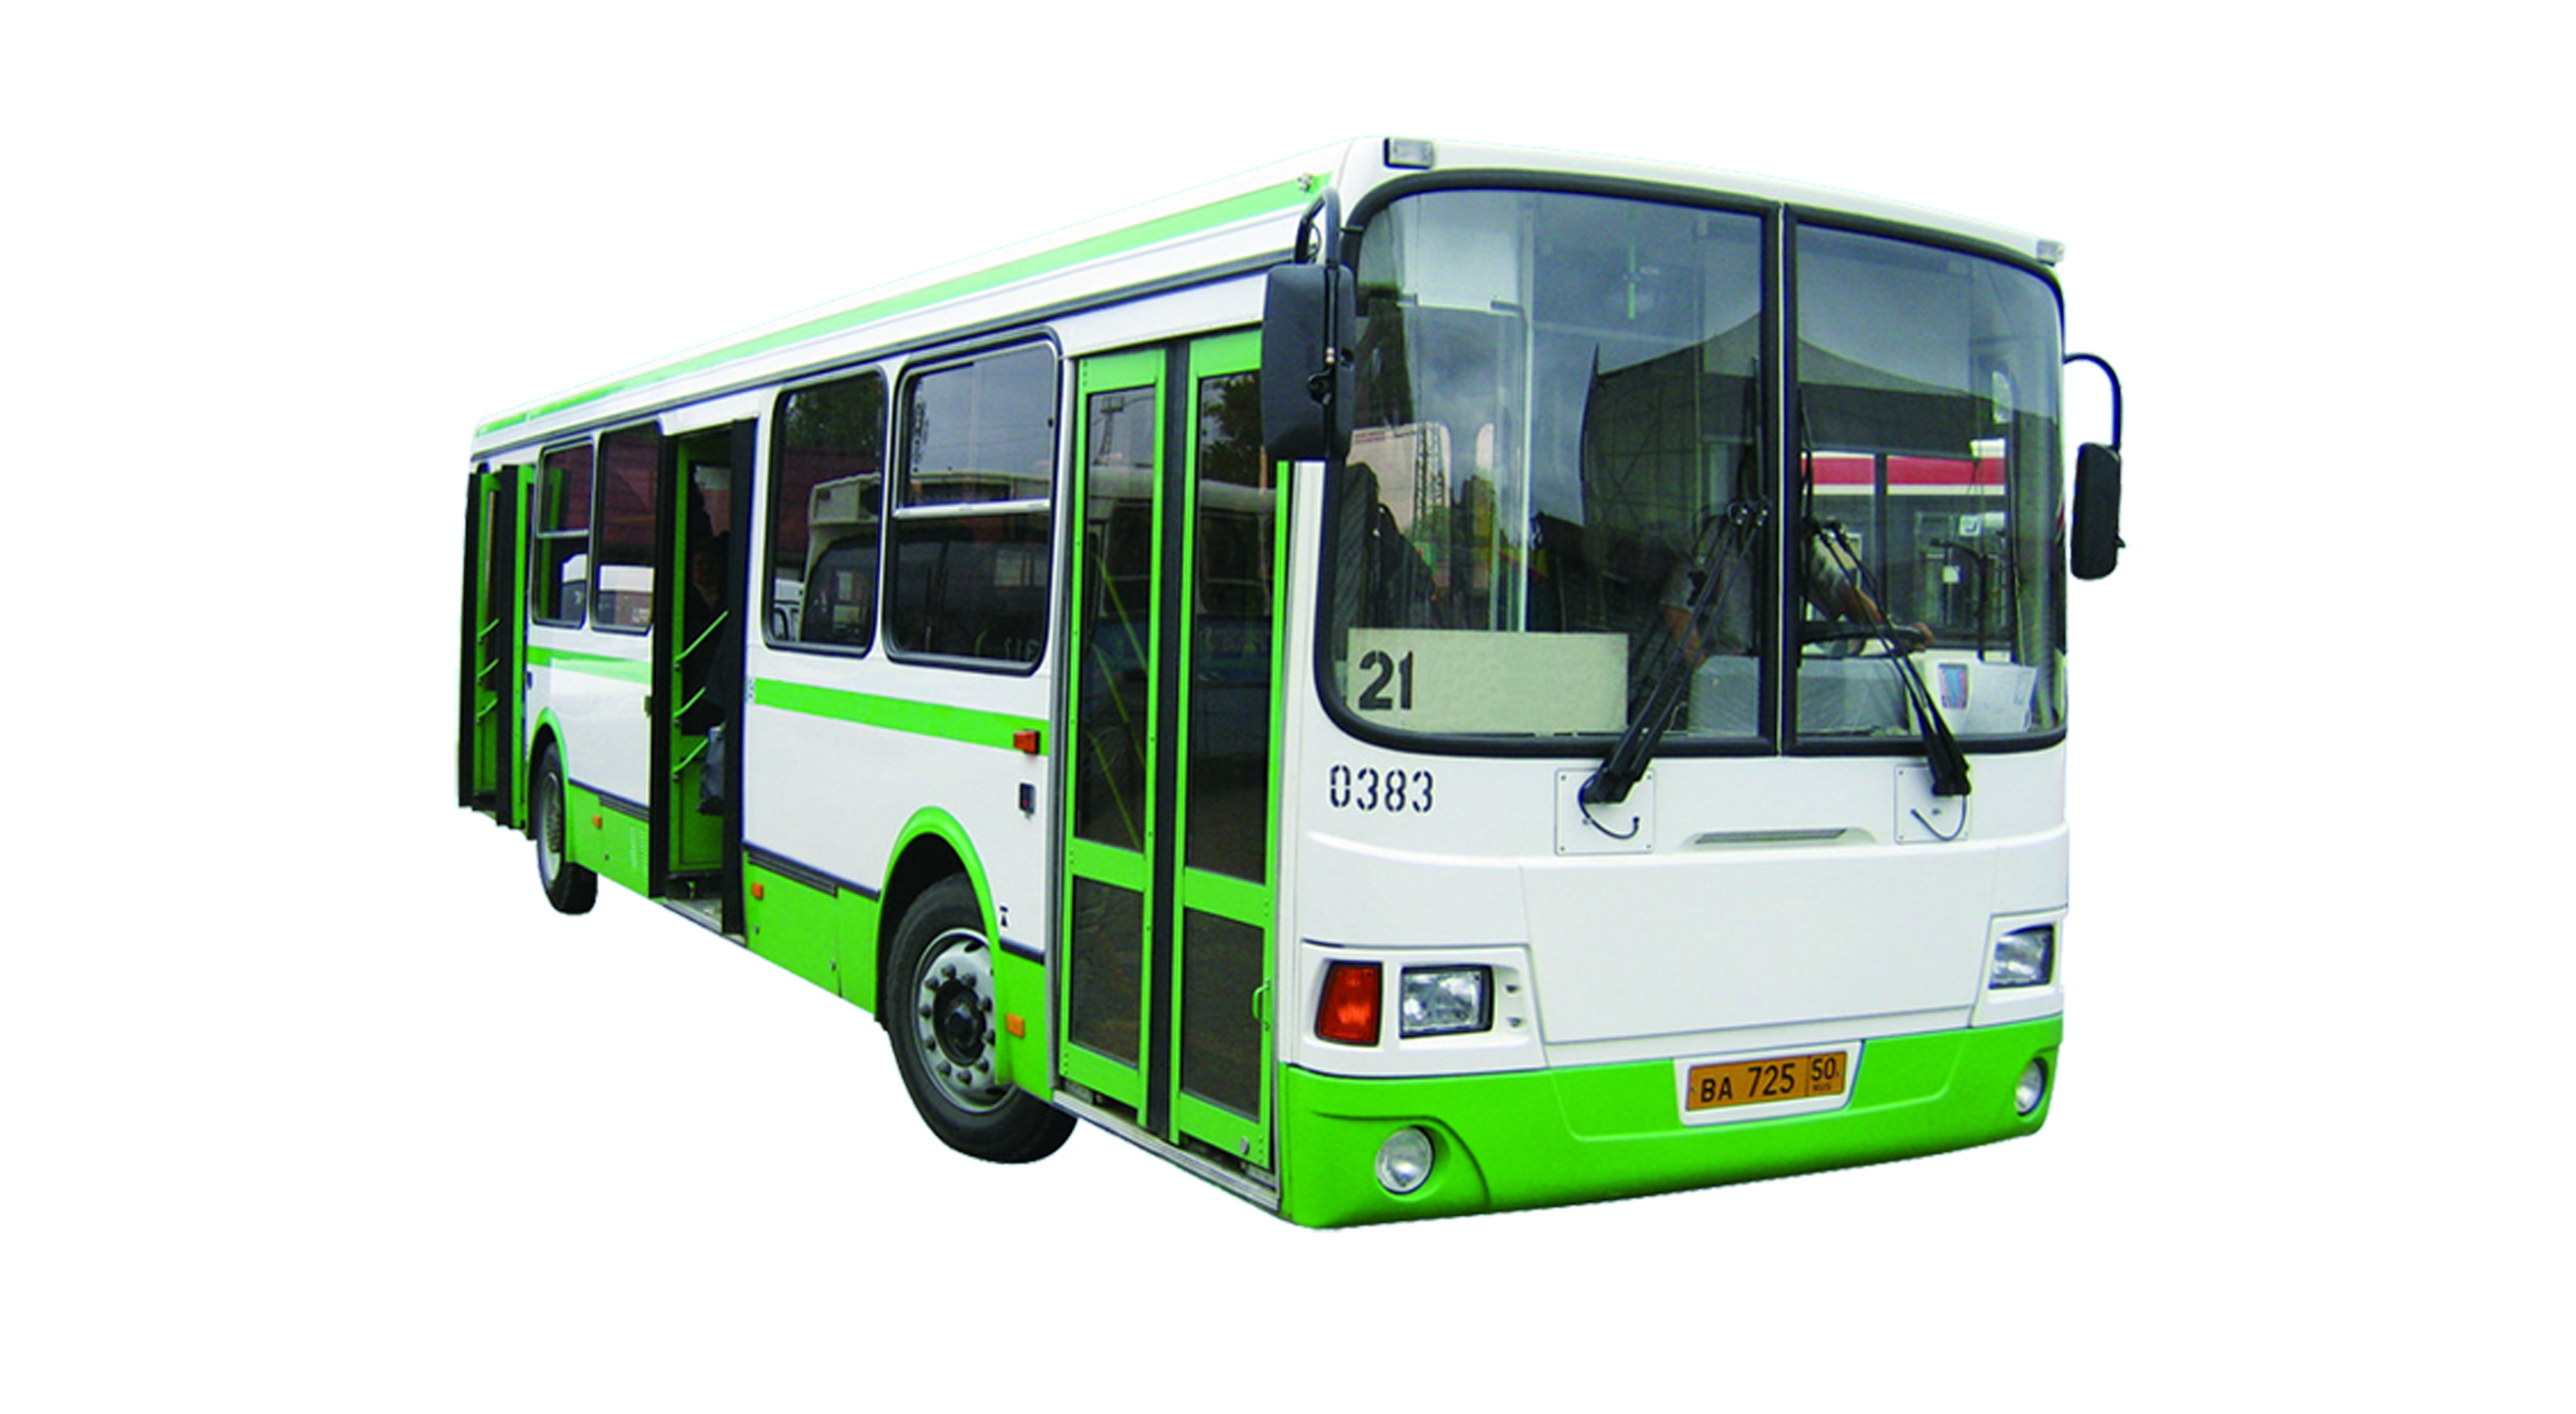 Mini bus png. Car router vehicle wi